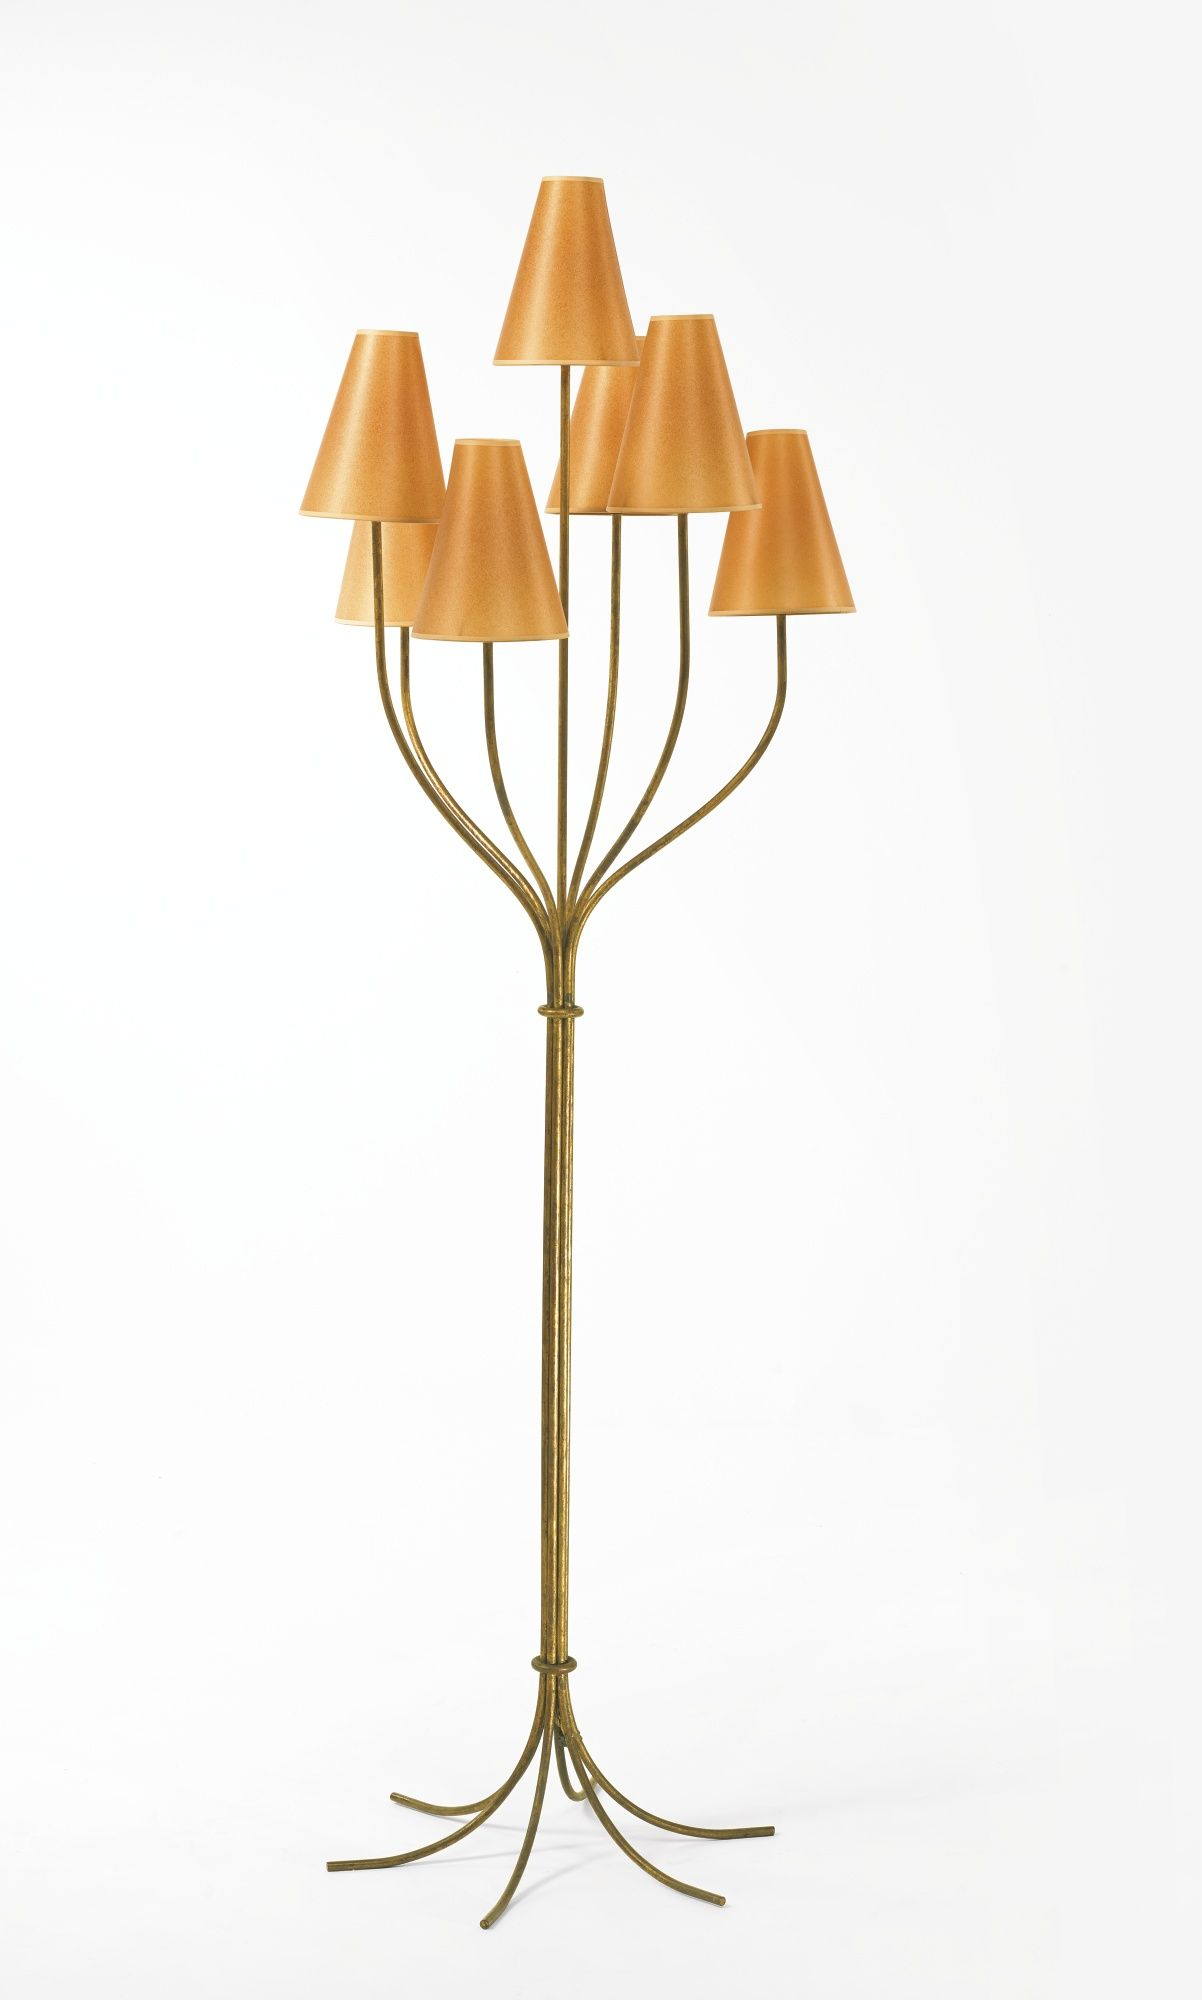 Jean Royere Persan Floor Lamp Gilt Metal And Paper Shades 71 5 8 In 182 Cm High Including Shades Circa 1955 Faux Chateau Sothebys Gilt